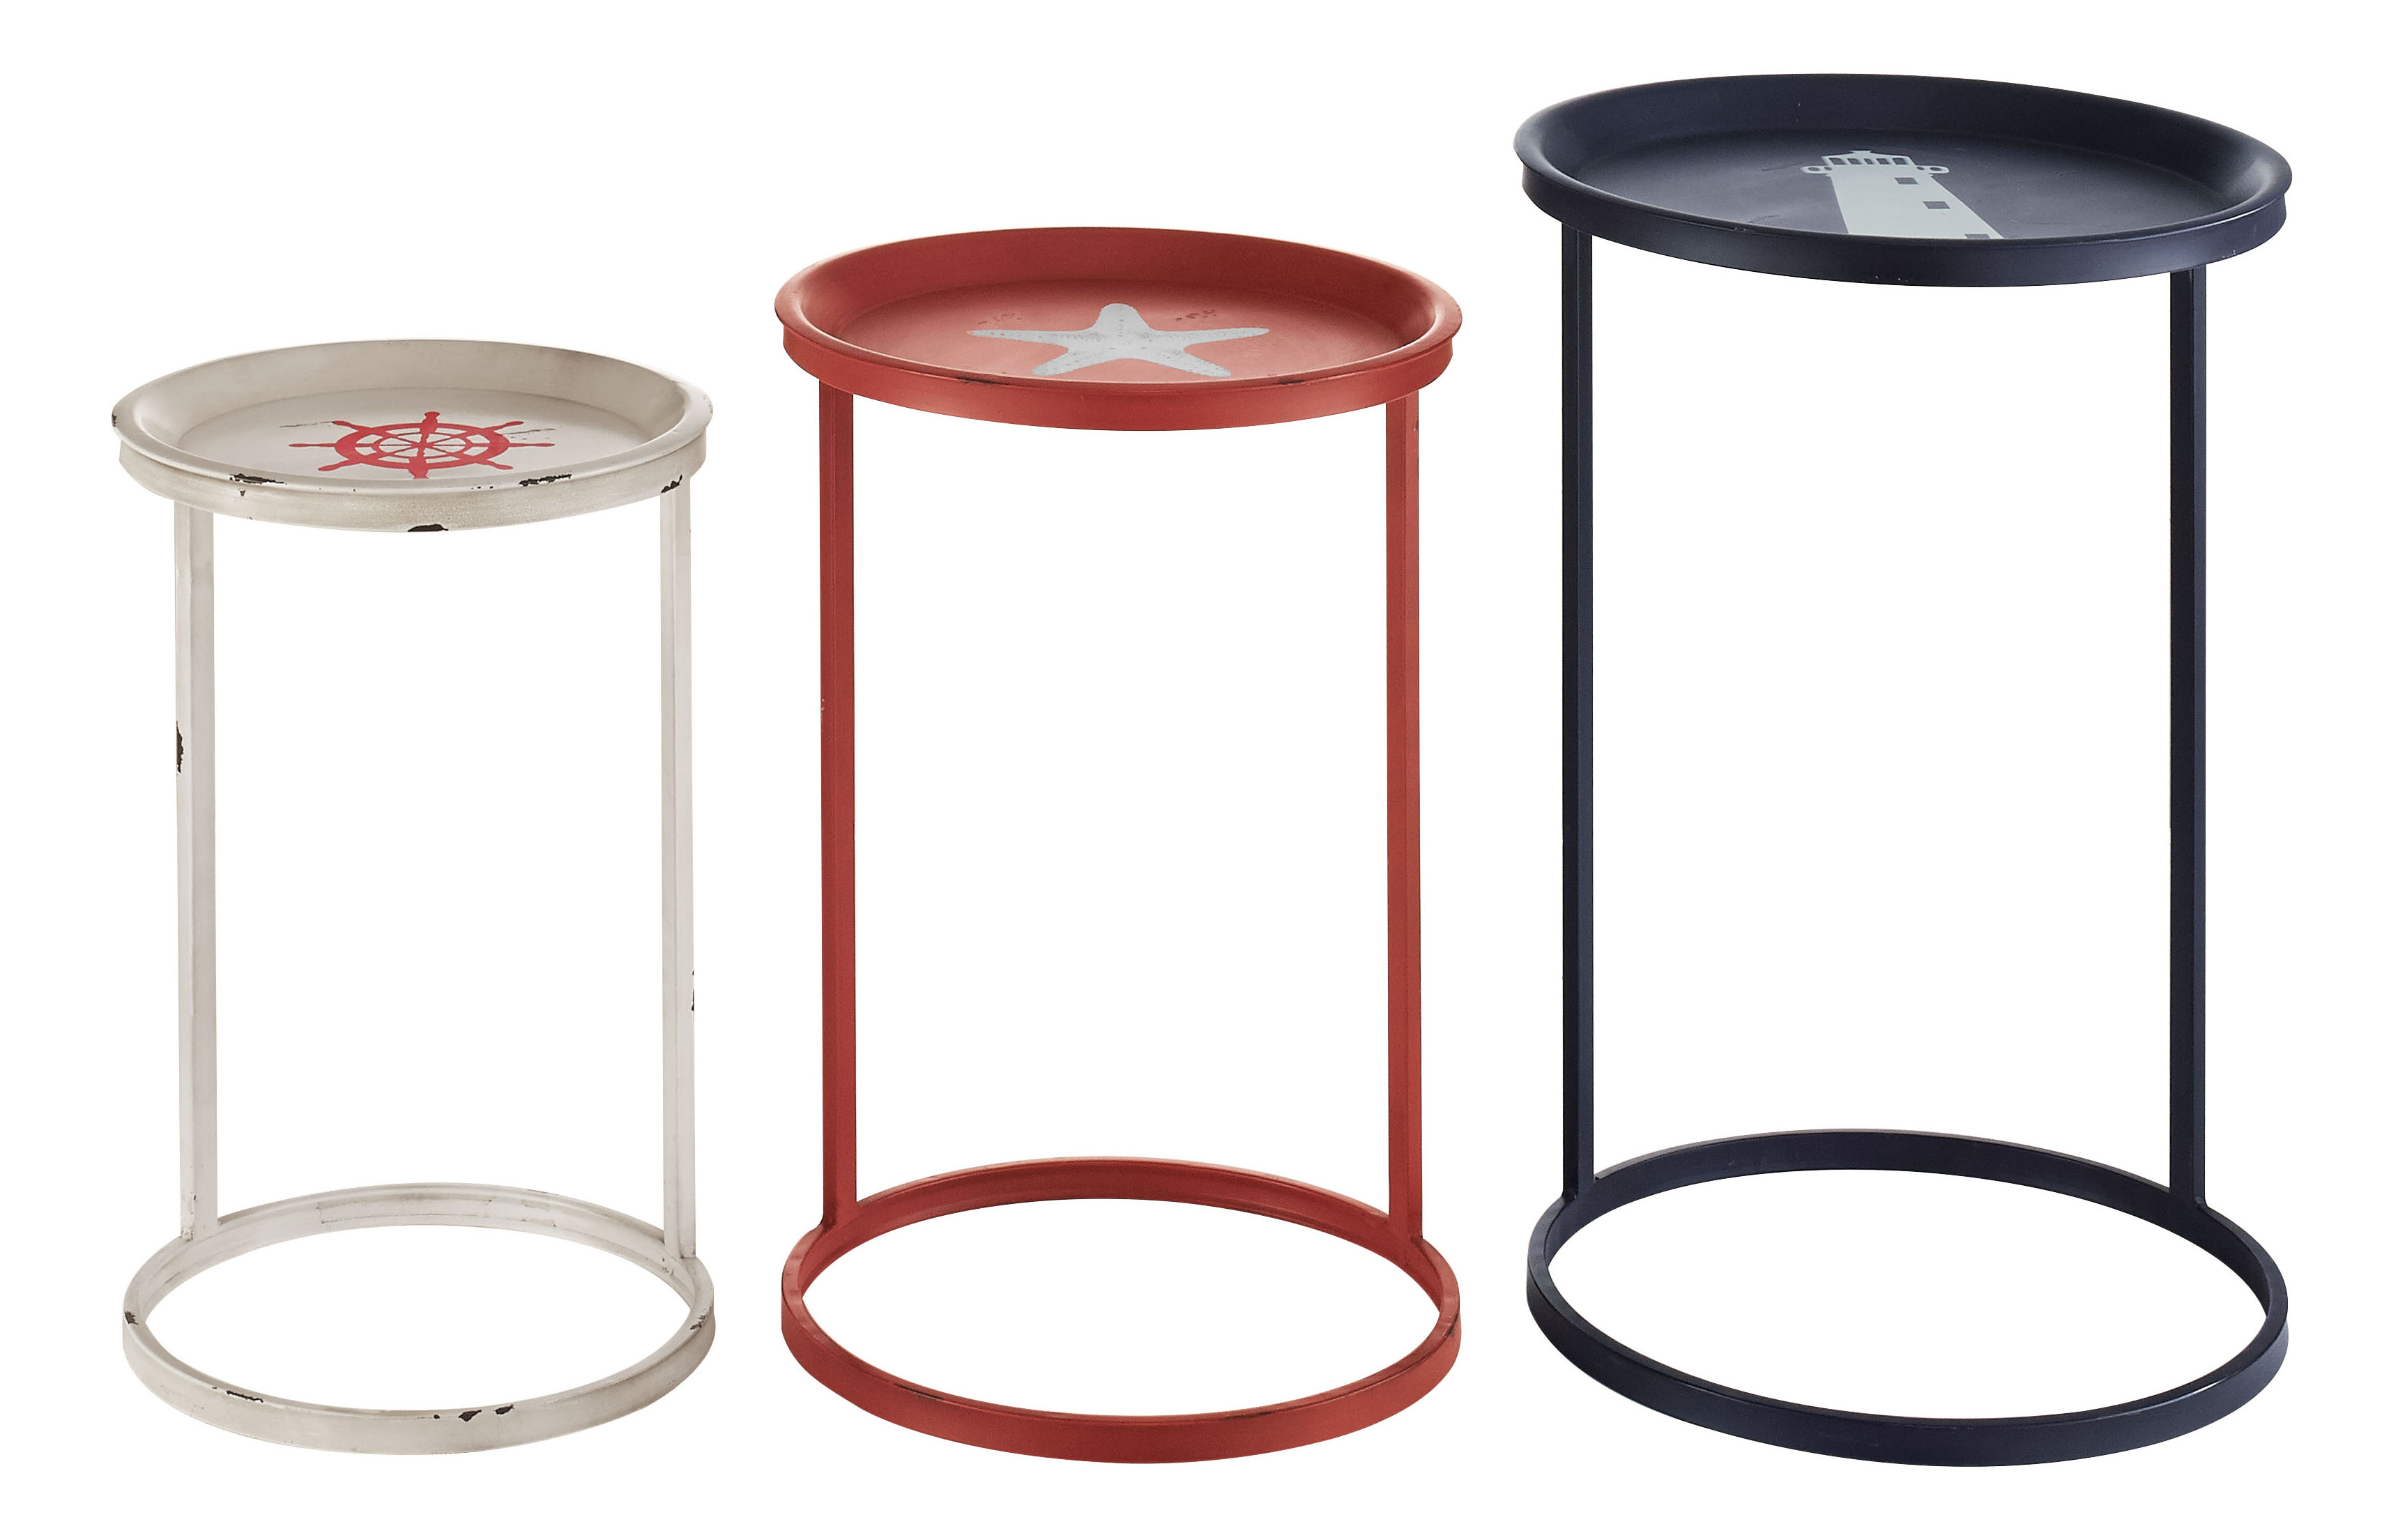 """Linon Home Decor Products Alan Nautical Tables, 23-3/4""""H x 16""""W x 16""""D, Red/White/Blue, Set Of 3 Tables"""